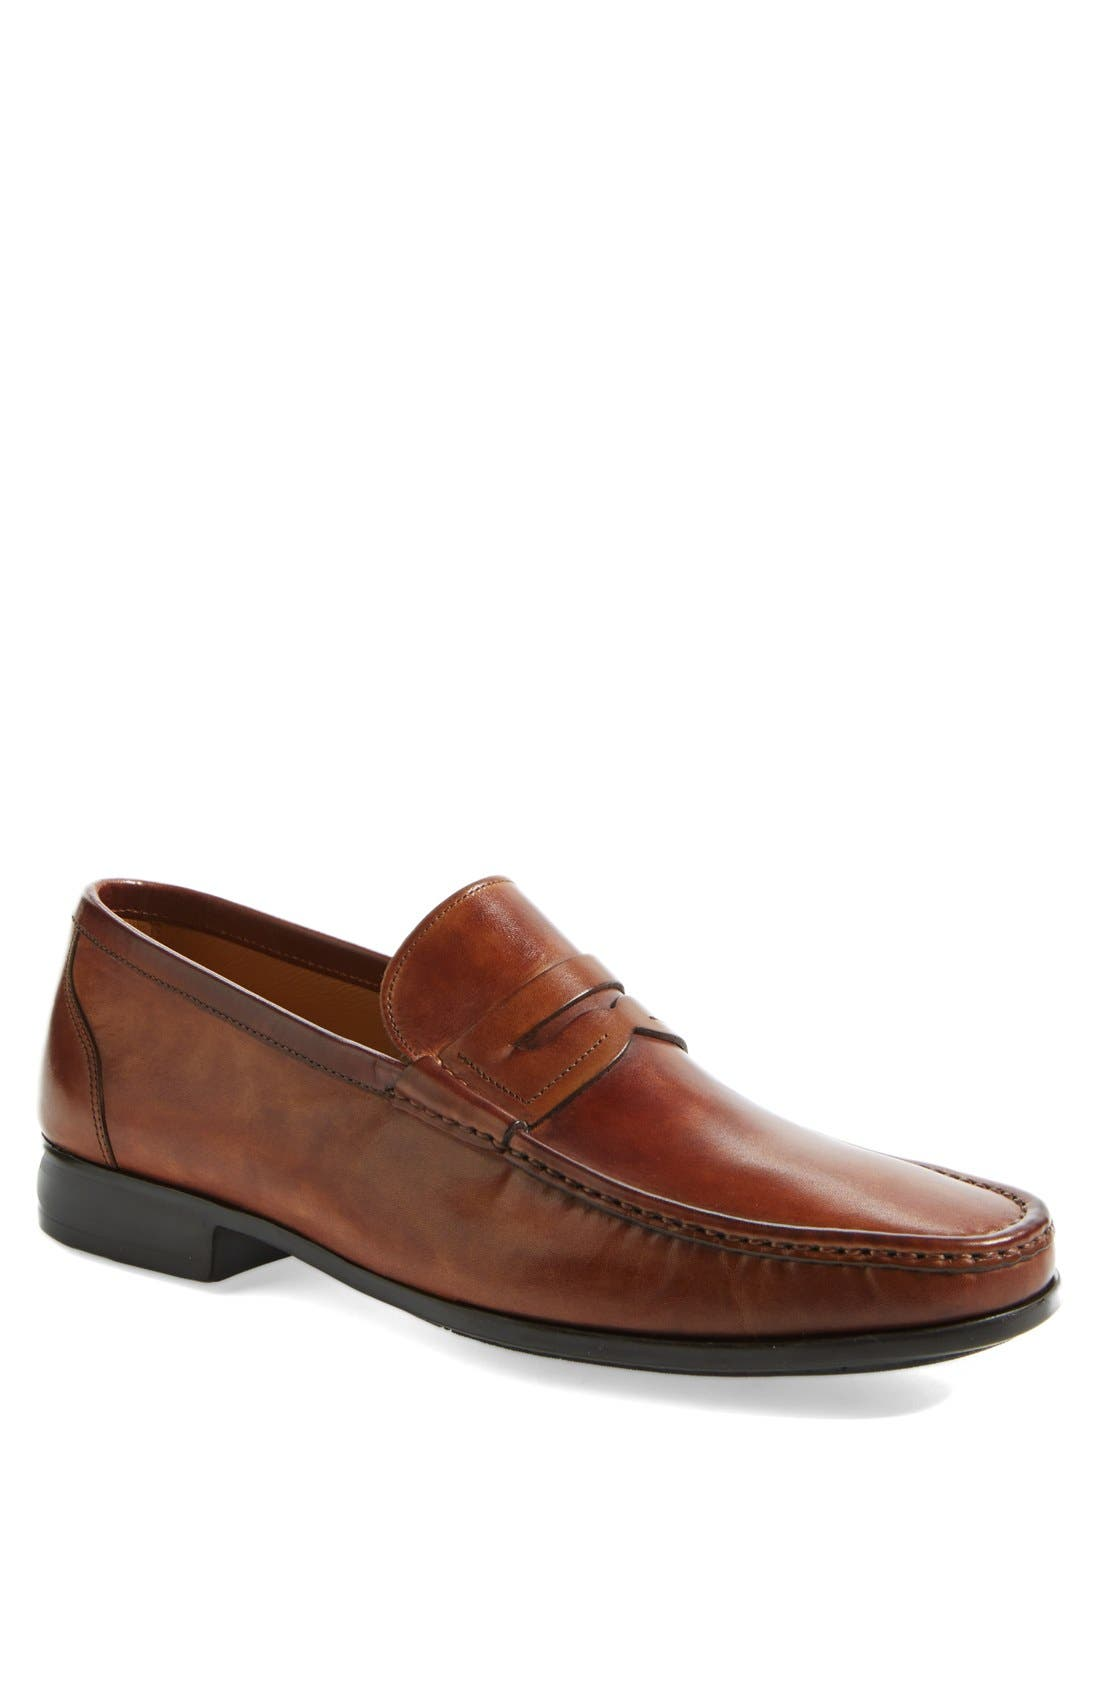 Magnanni 'Ares' Penny Loafer (Men)